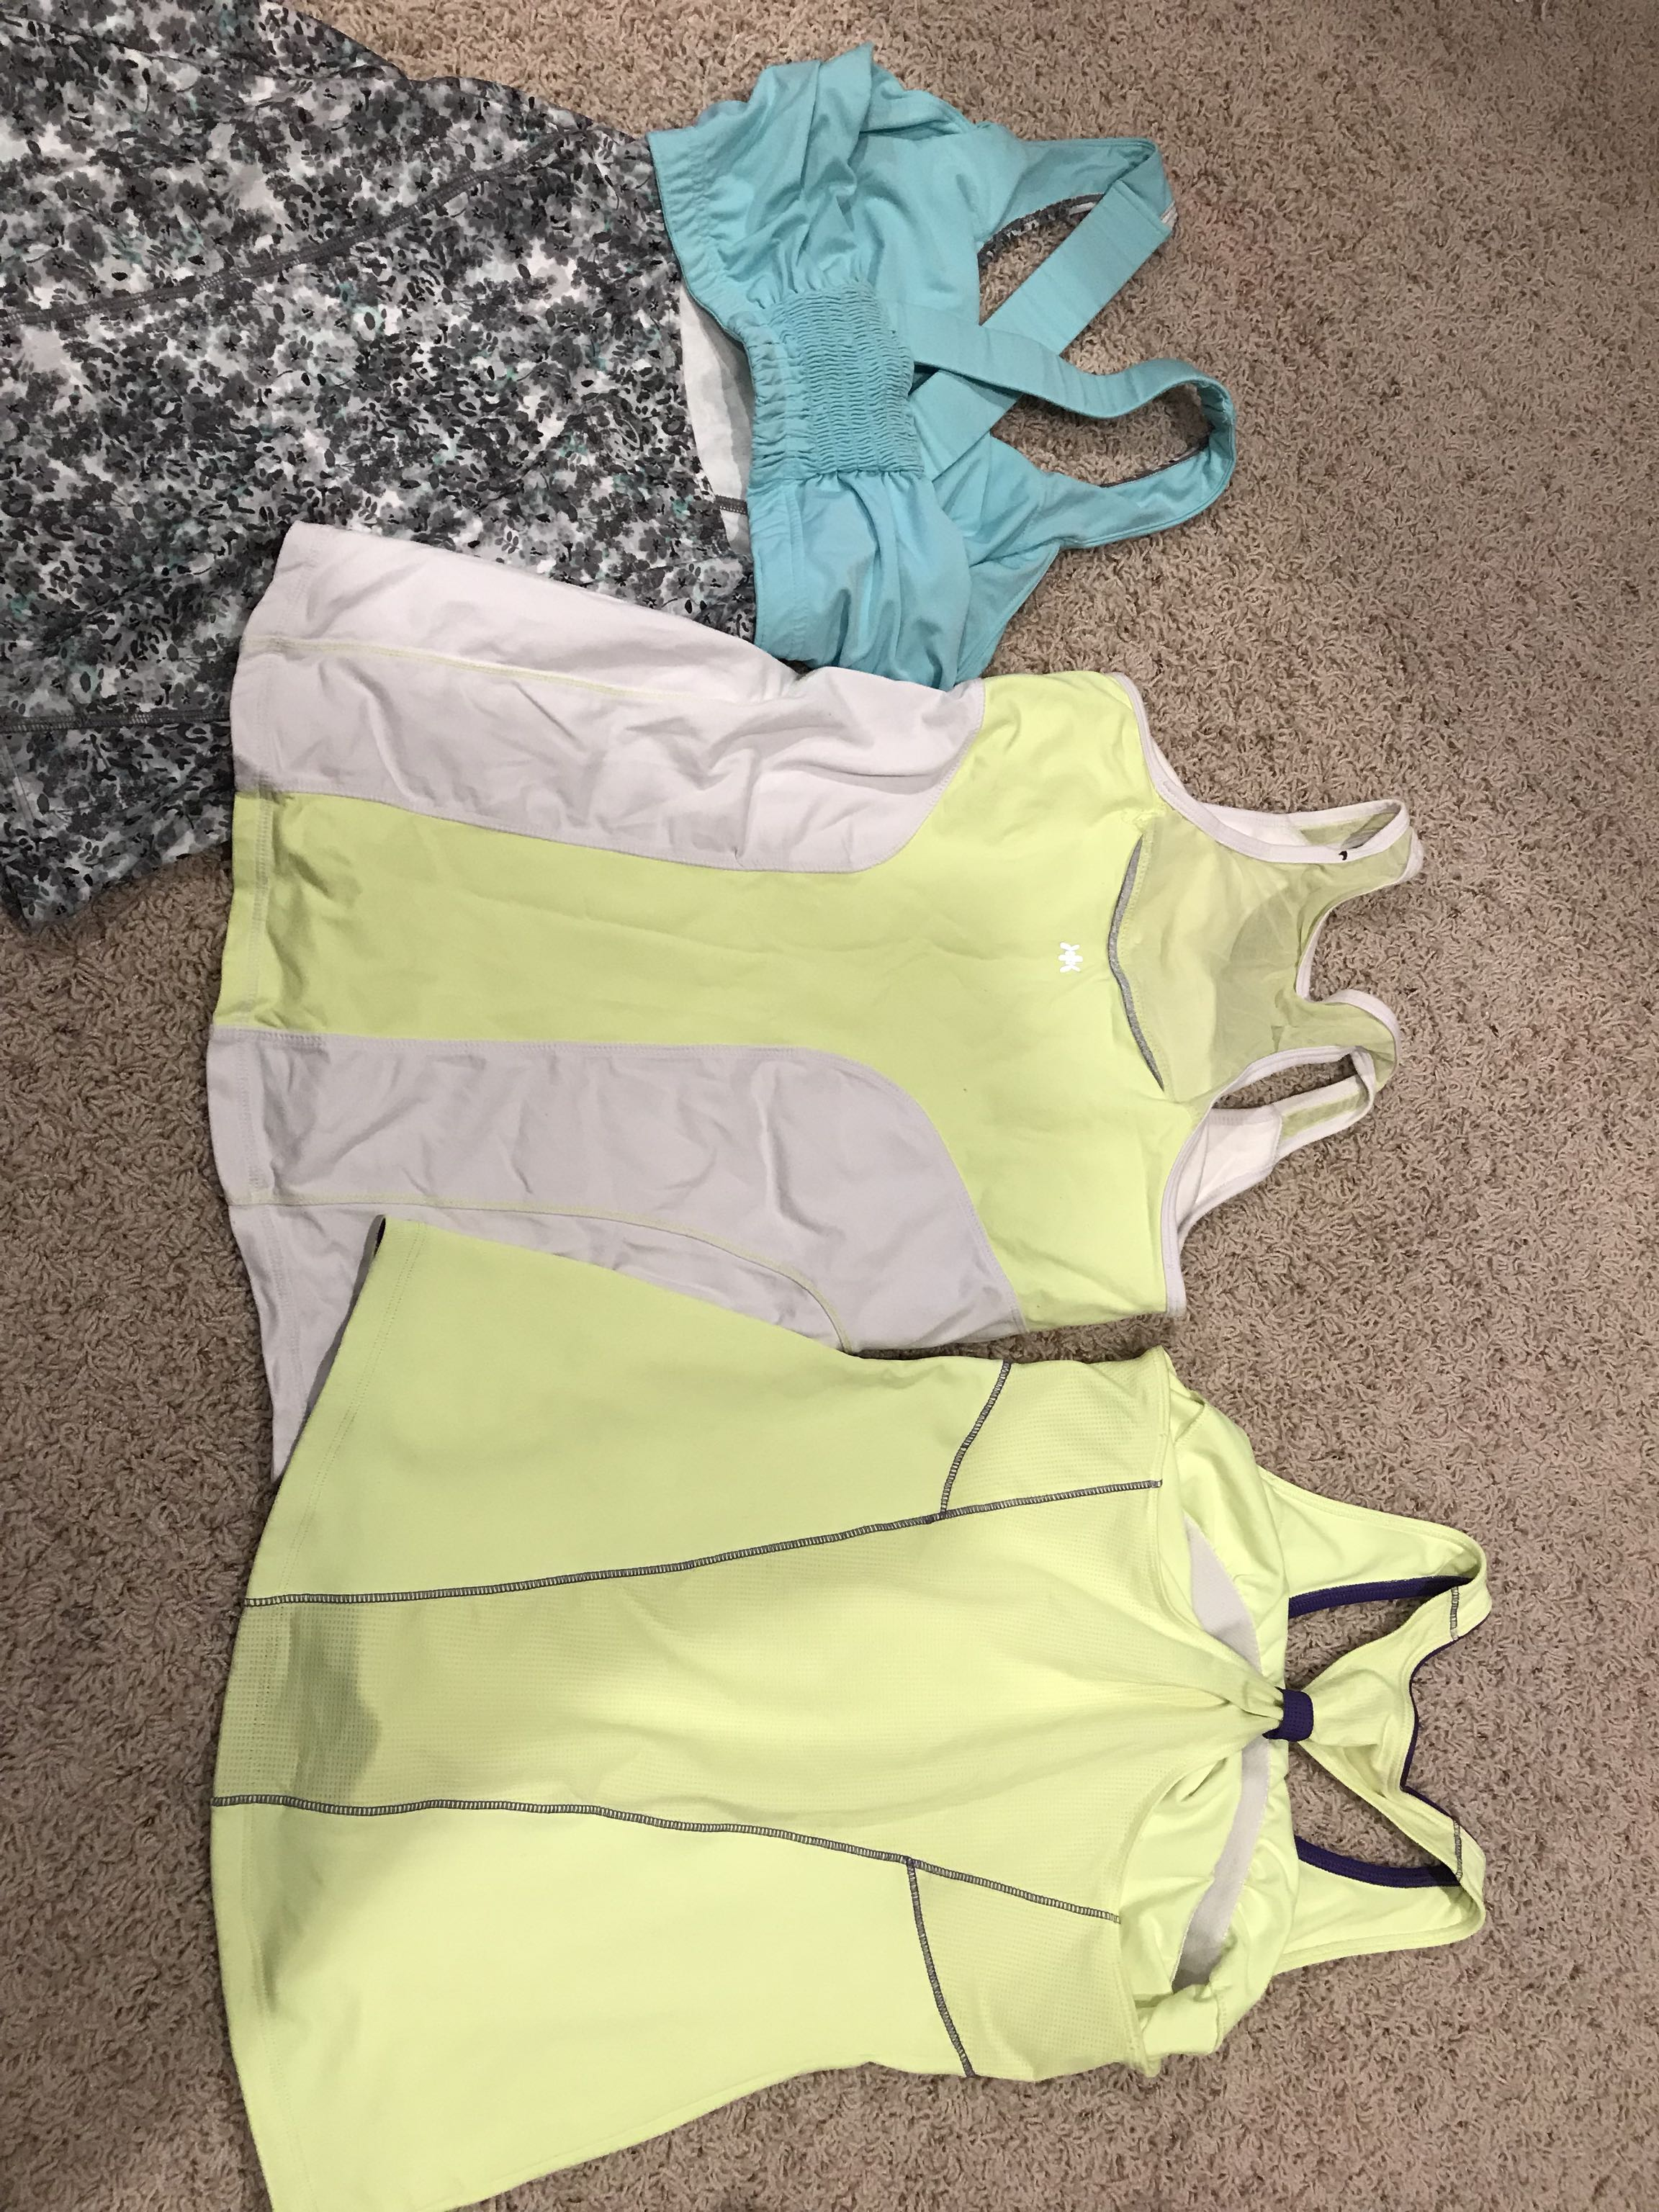 Work out tanks size small